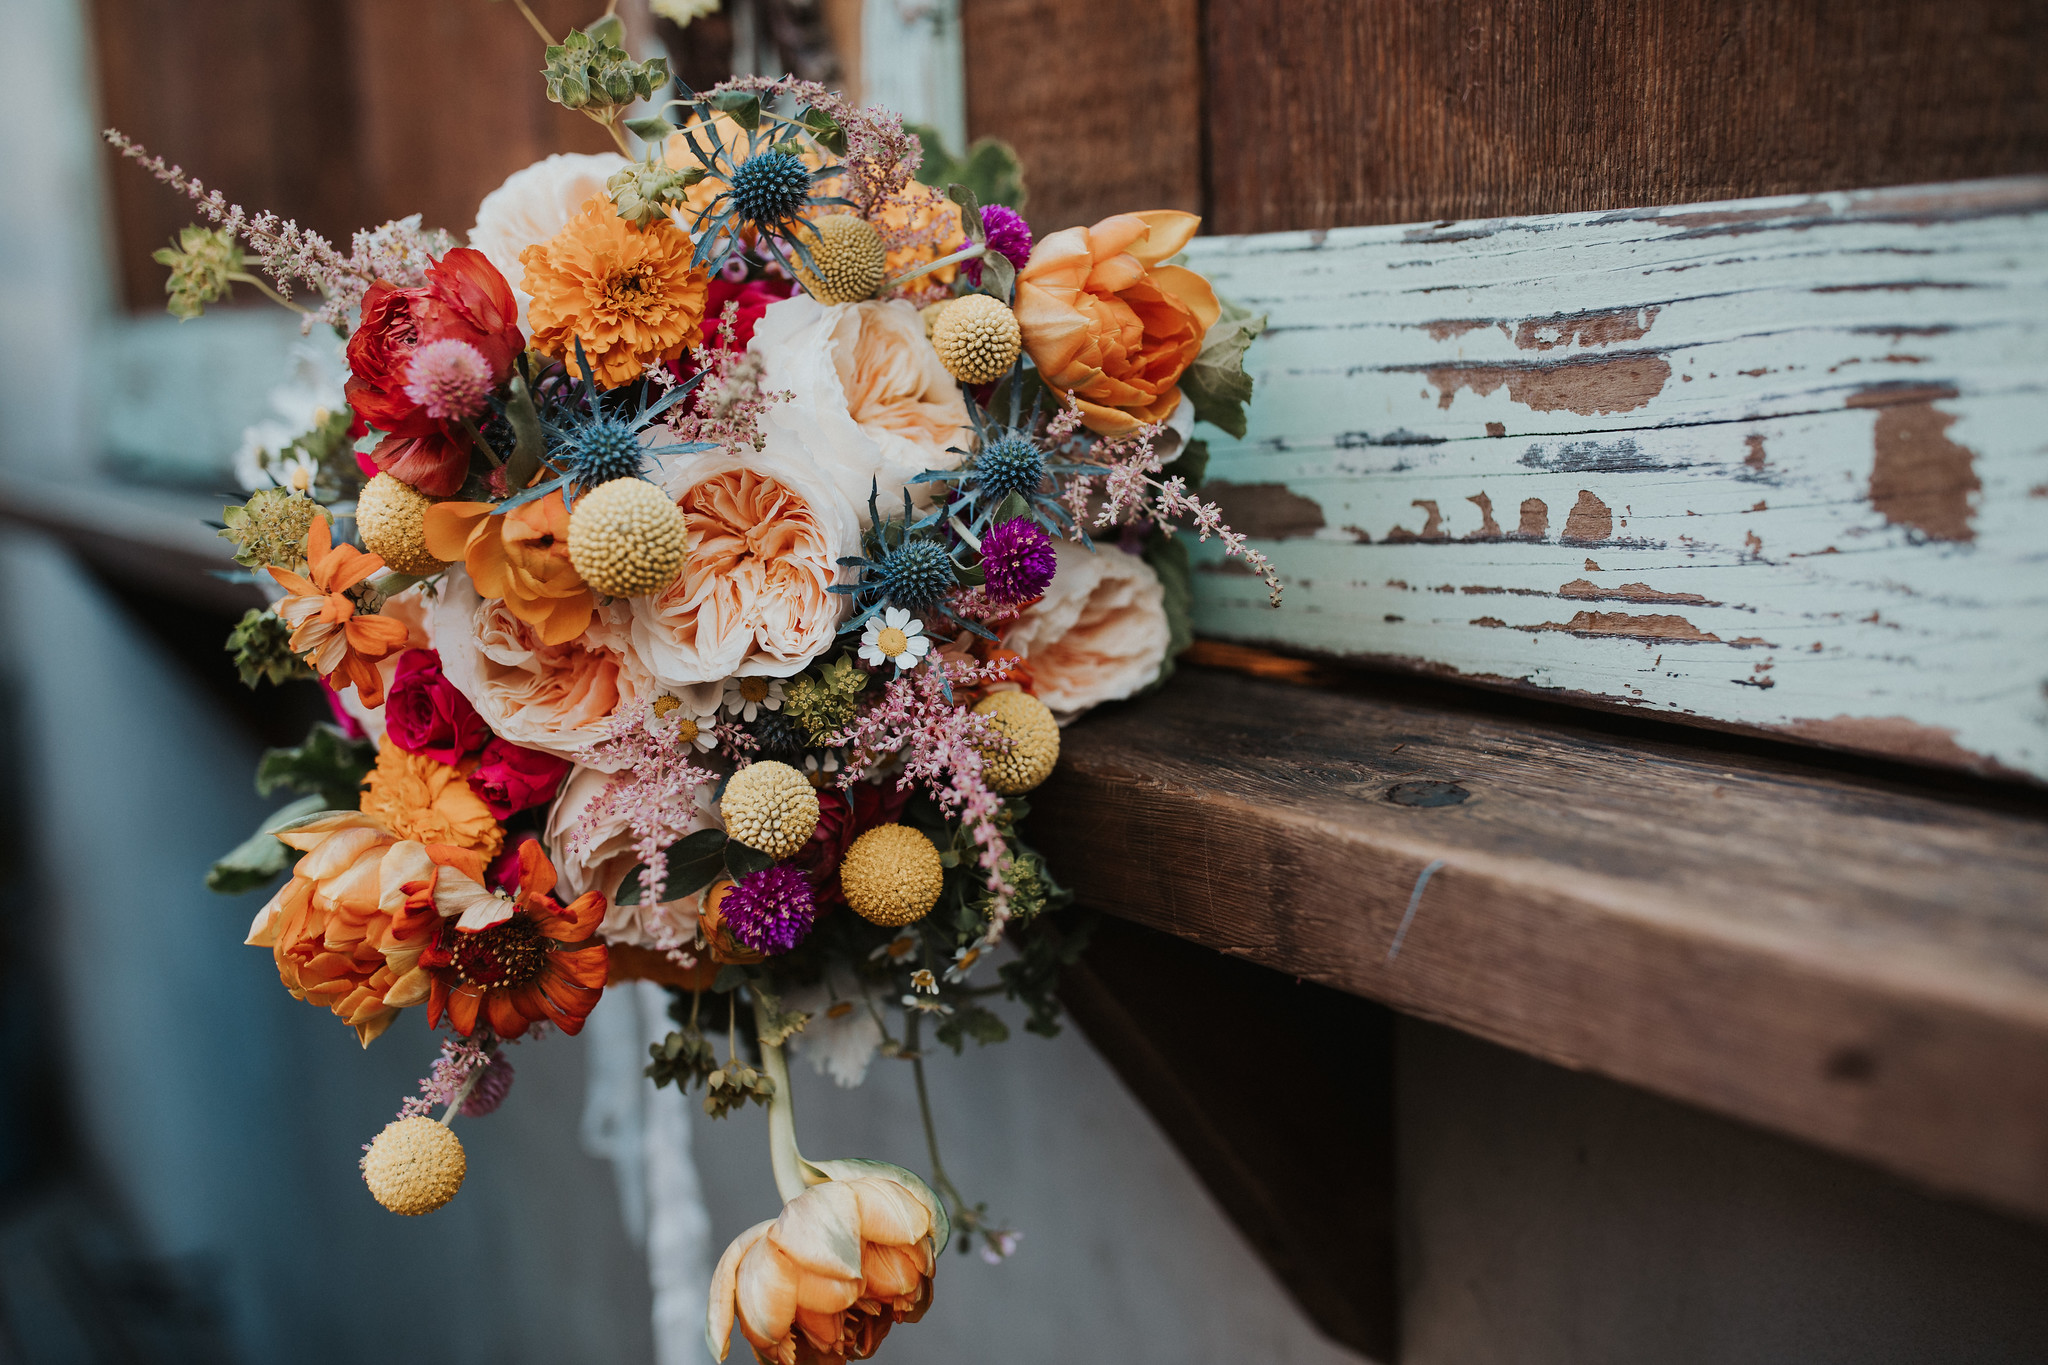 Erica's wedding bouquet- photography by Ariele Chapman